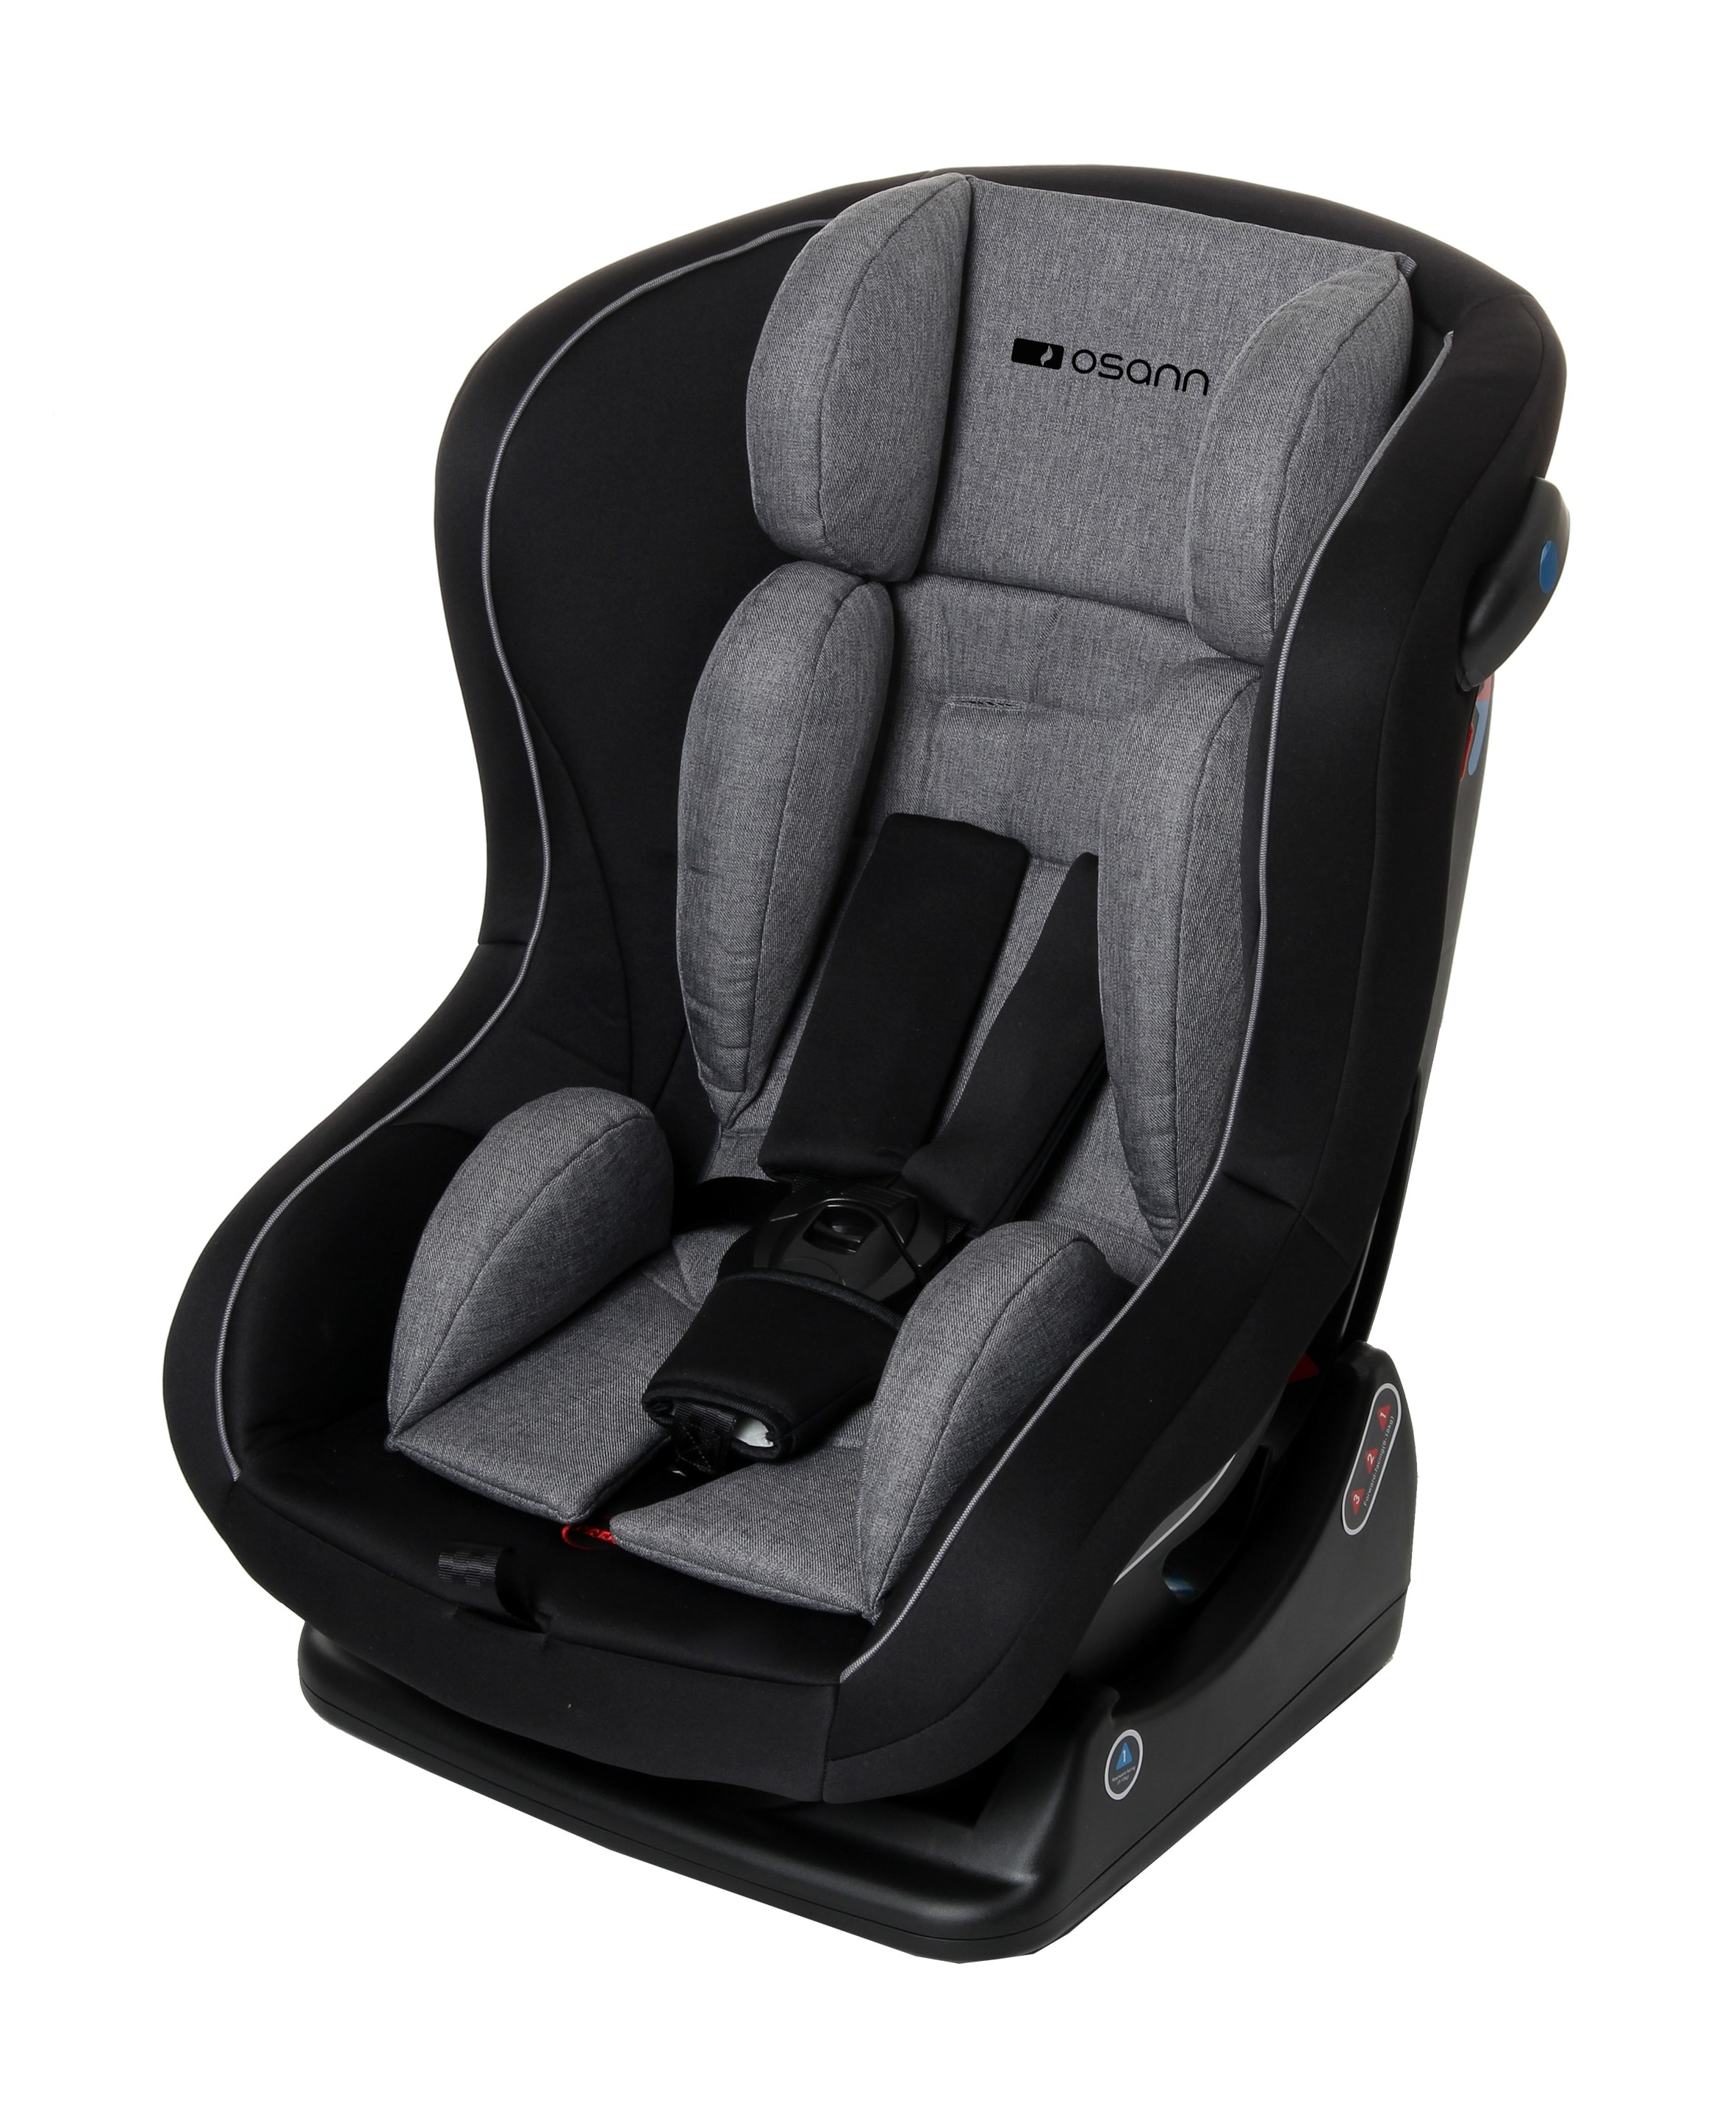 silla coche beb safety baby 0 1 osann cooldreams. Black Bedroom Furniture Sets. Home Design Ideas